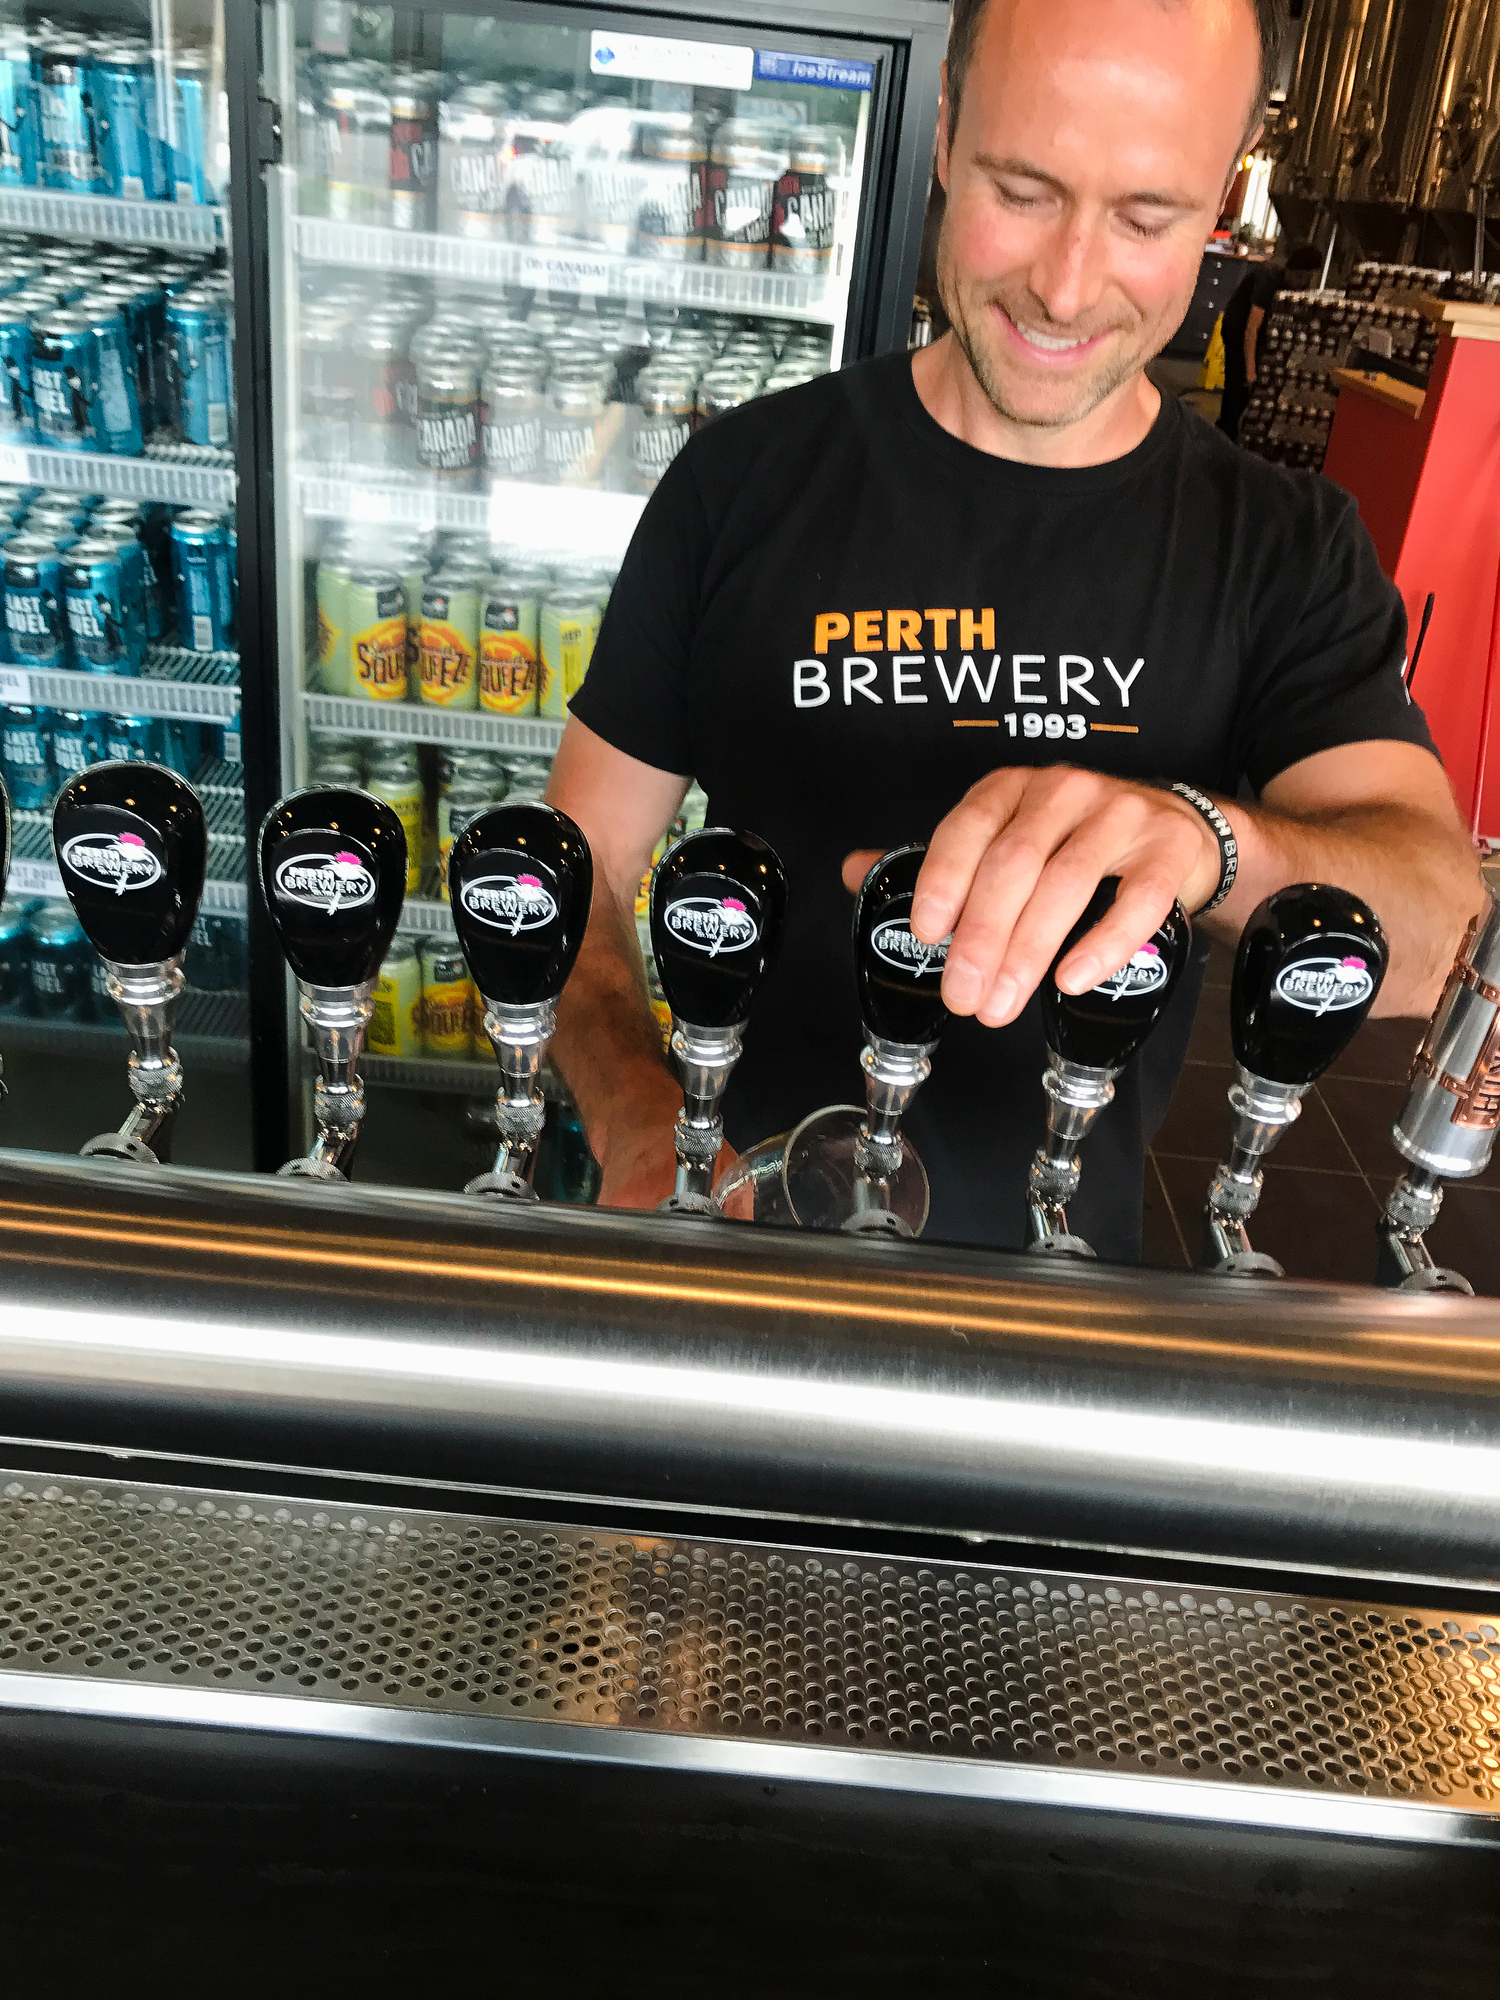 Perth Brewing serves Maple Ale on tap in Perth Ontario - the capital for maple syrup in Ontario